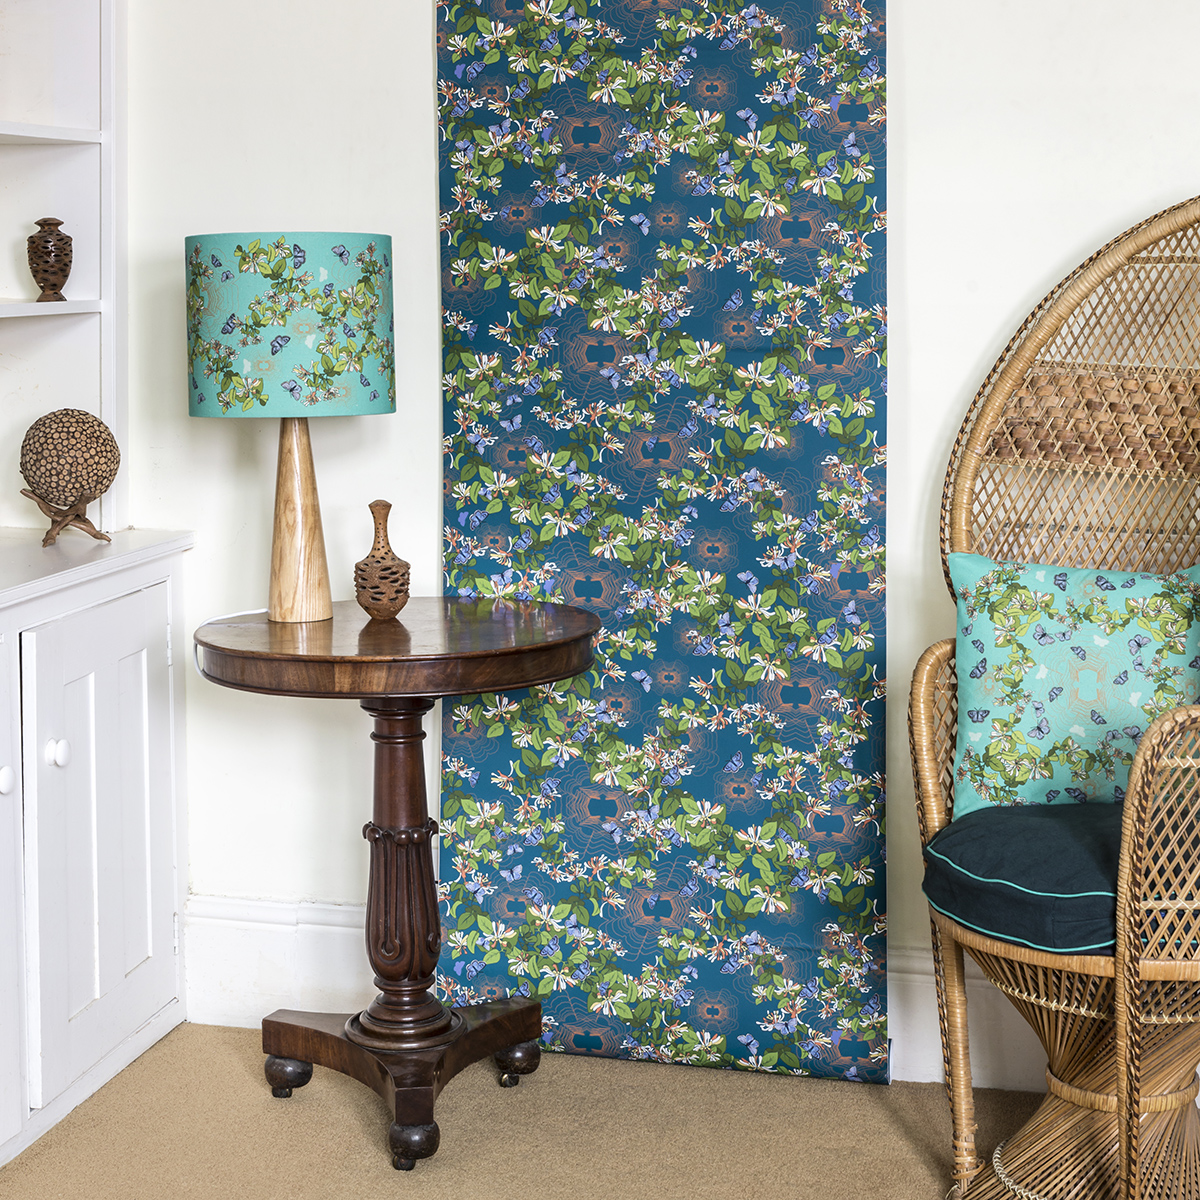 blue butteflt turq + teal wallpaper cushion and lamp panama lifestyle.jpg